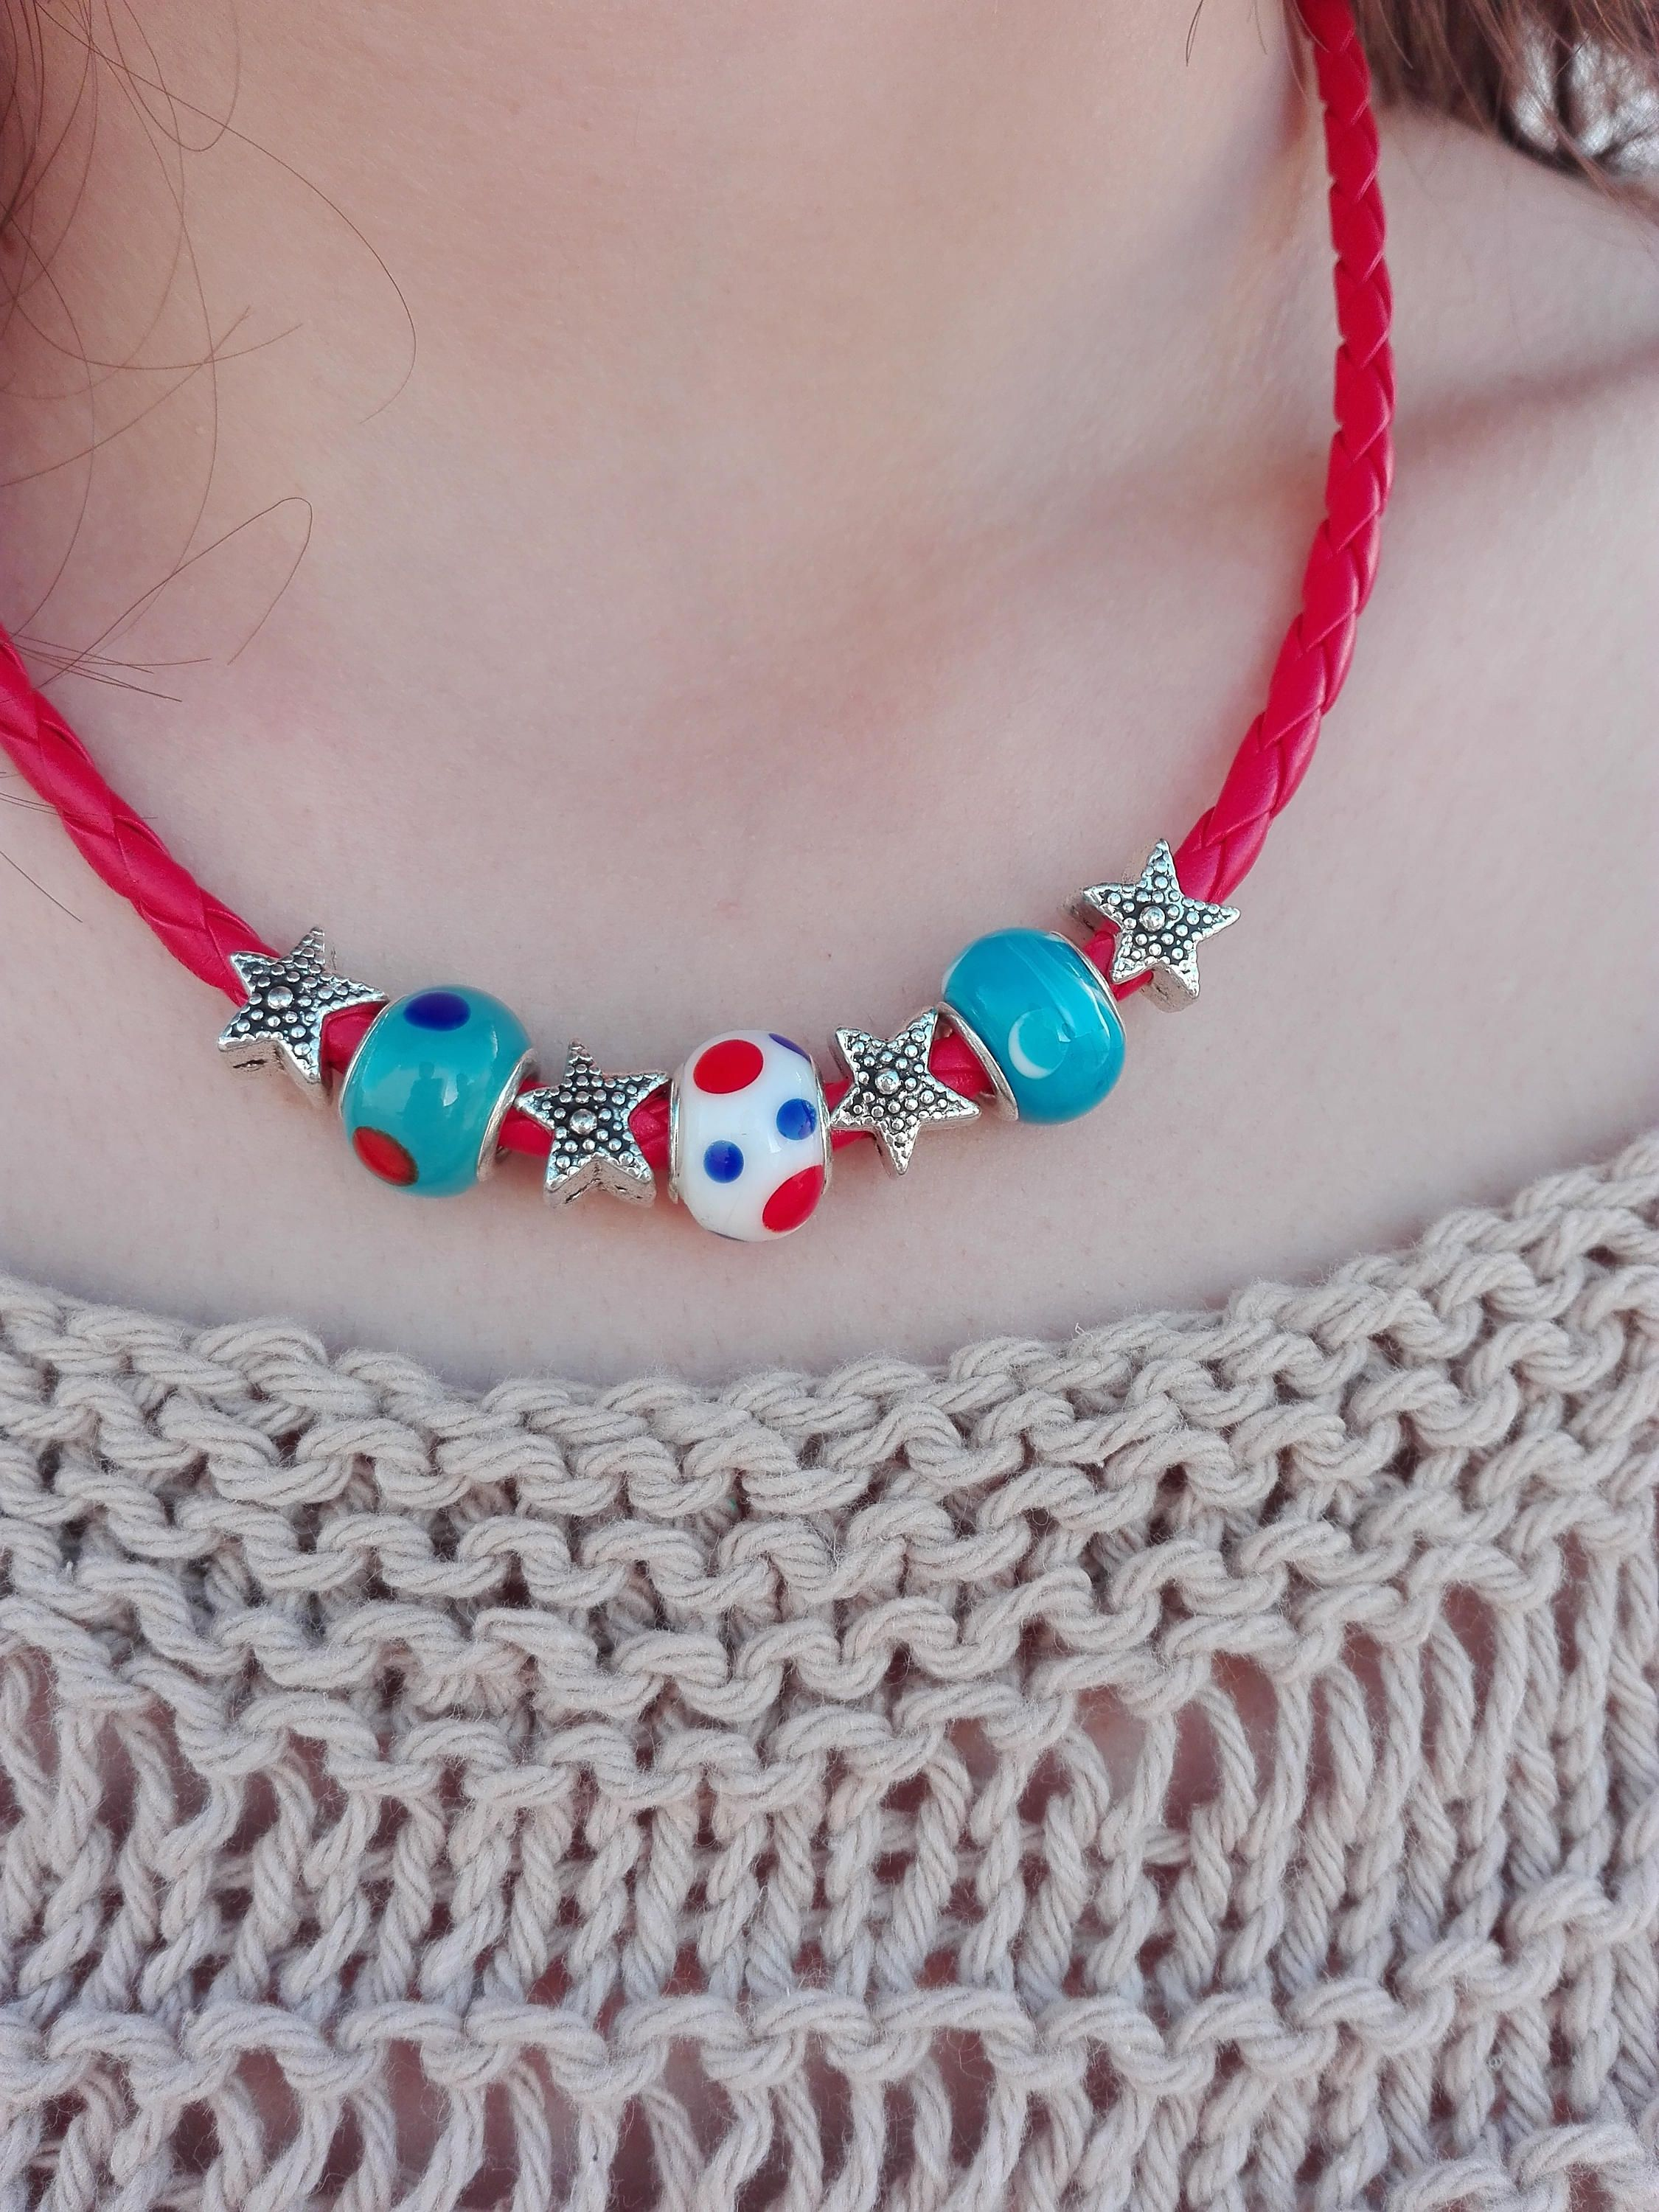 Navy Necklace in red, with blue, white and red glass beads and metal starfish silver beads by InnerFeeling on Etsy